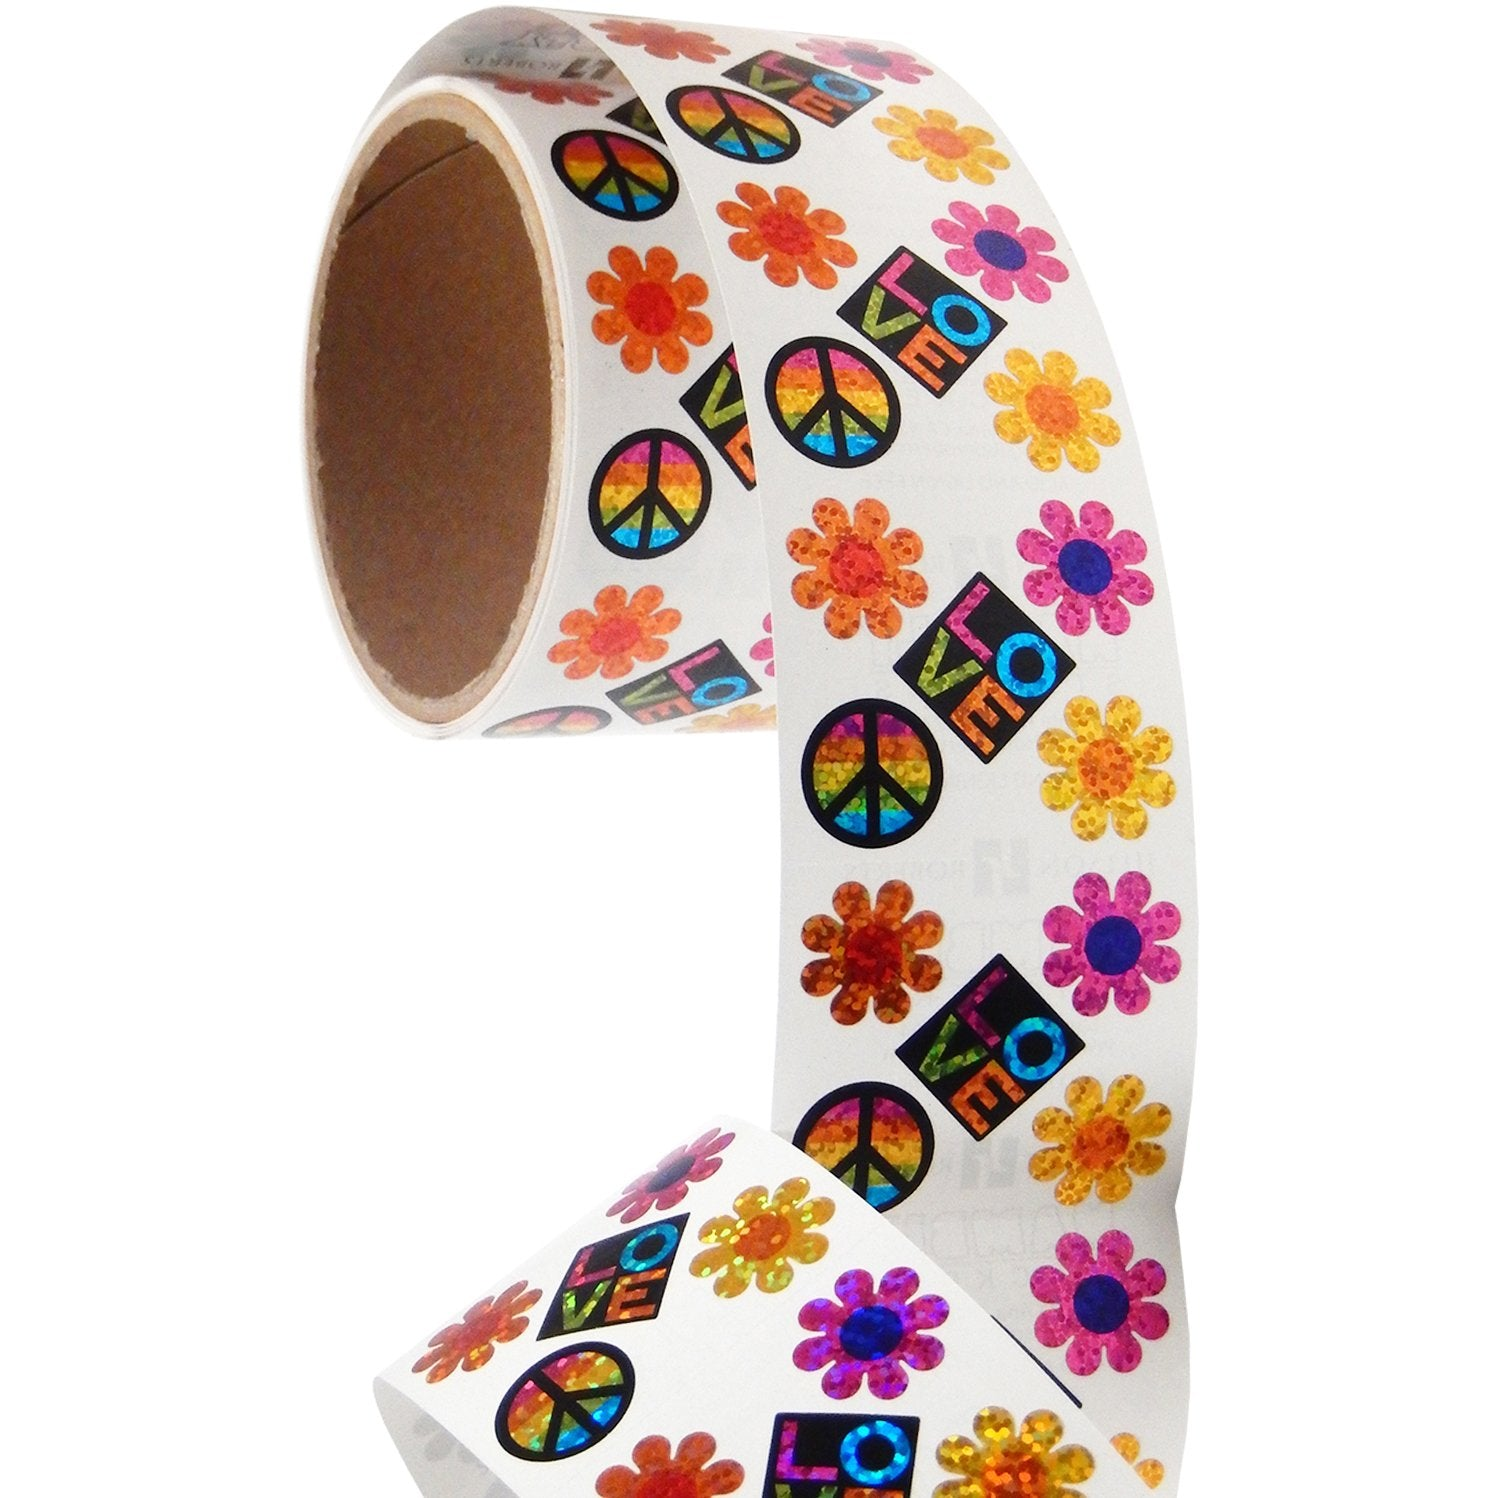 Jillson & Roberts Bulk Roll Prismatic Stickers, Peace / Love / Flower Power (100 Repeats) - Present Paper